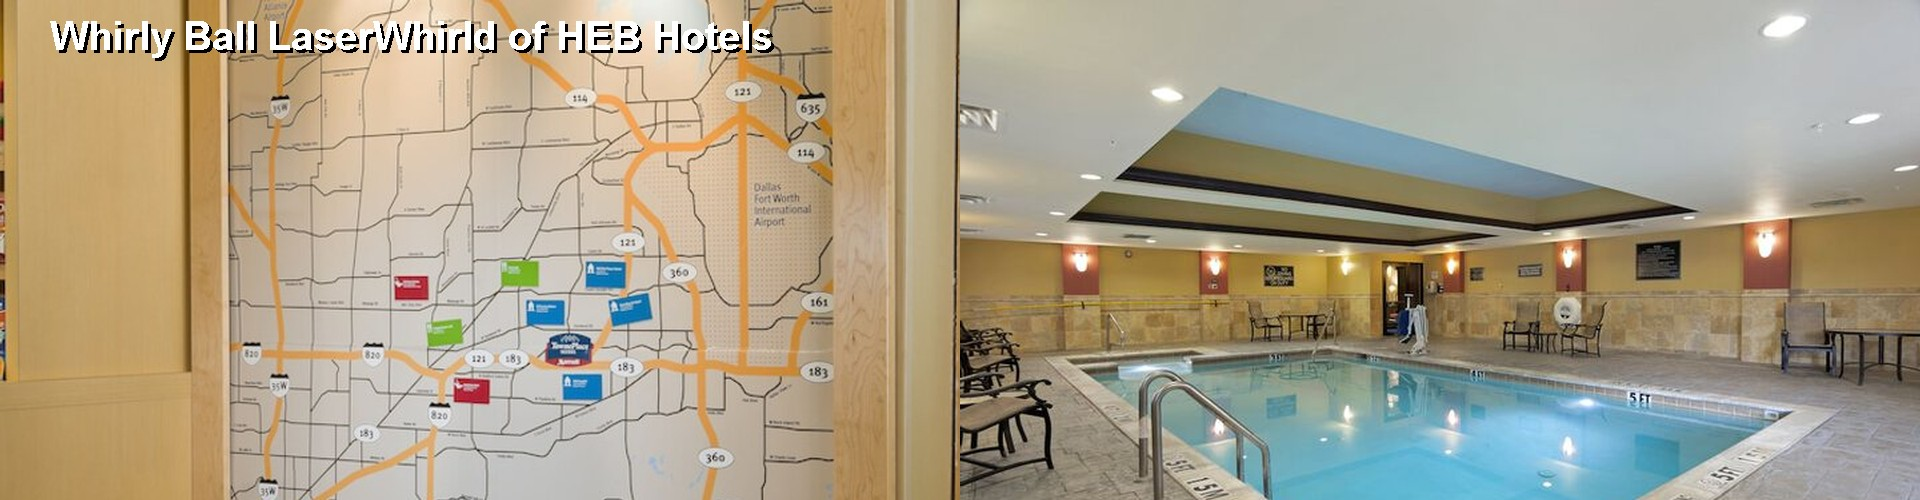 5 Best Hotels near Whirly Ball LaserWhirld of HEB